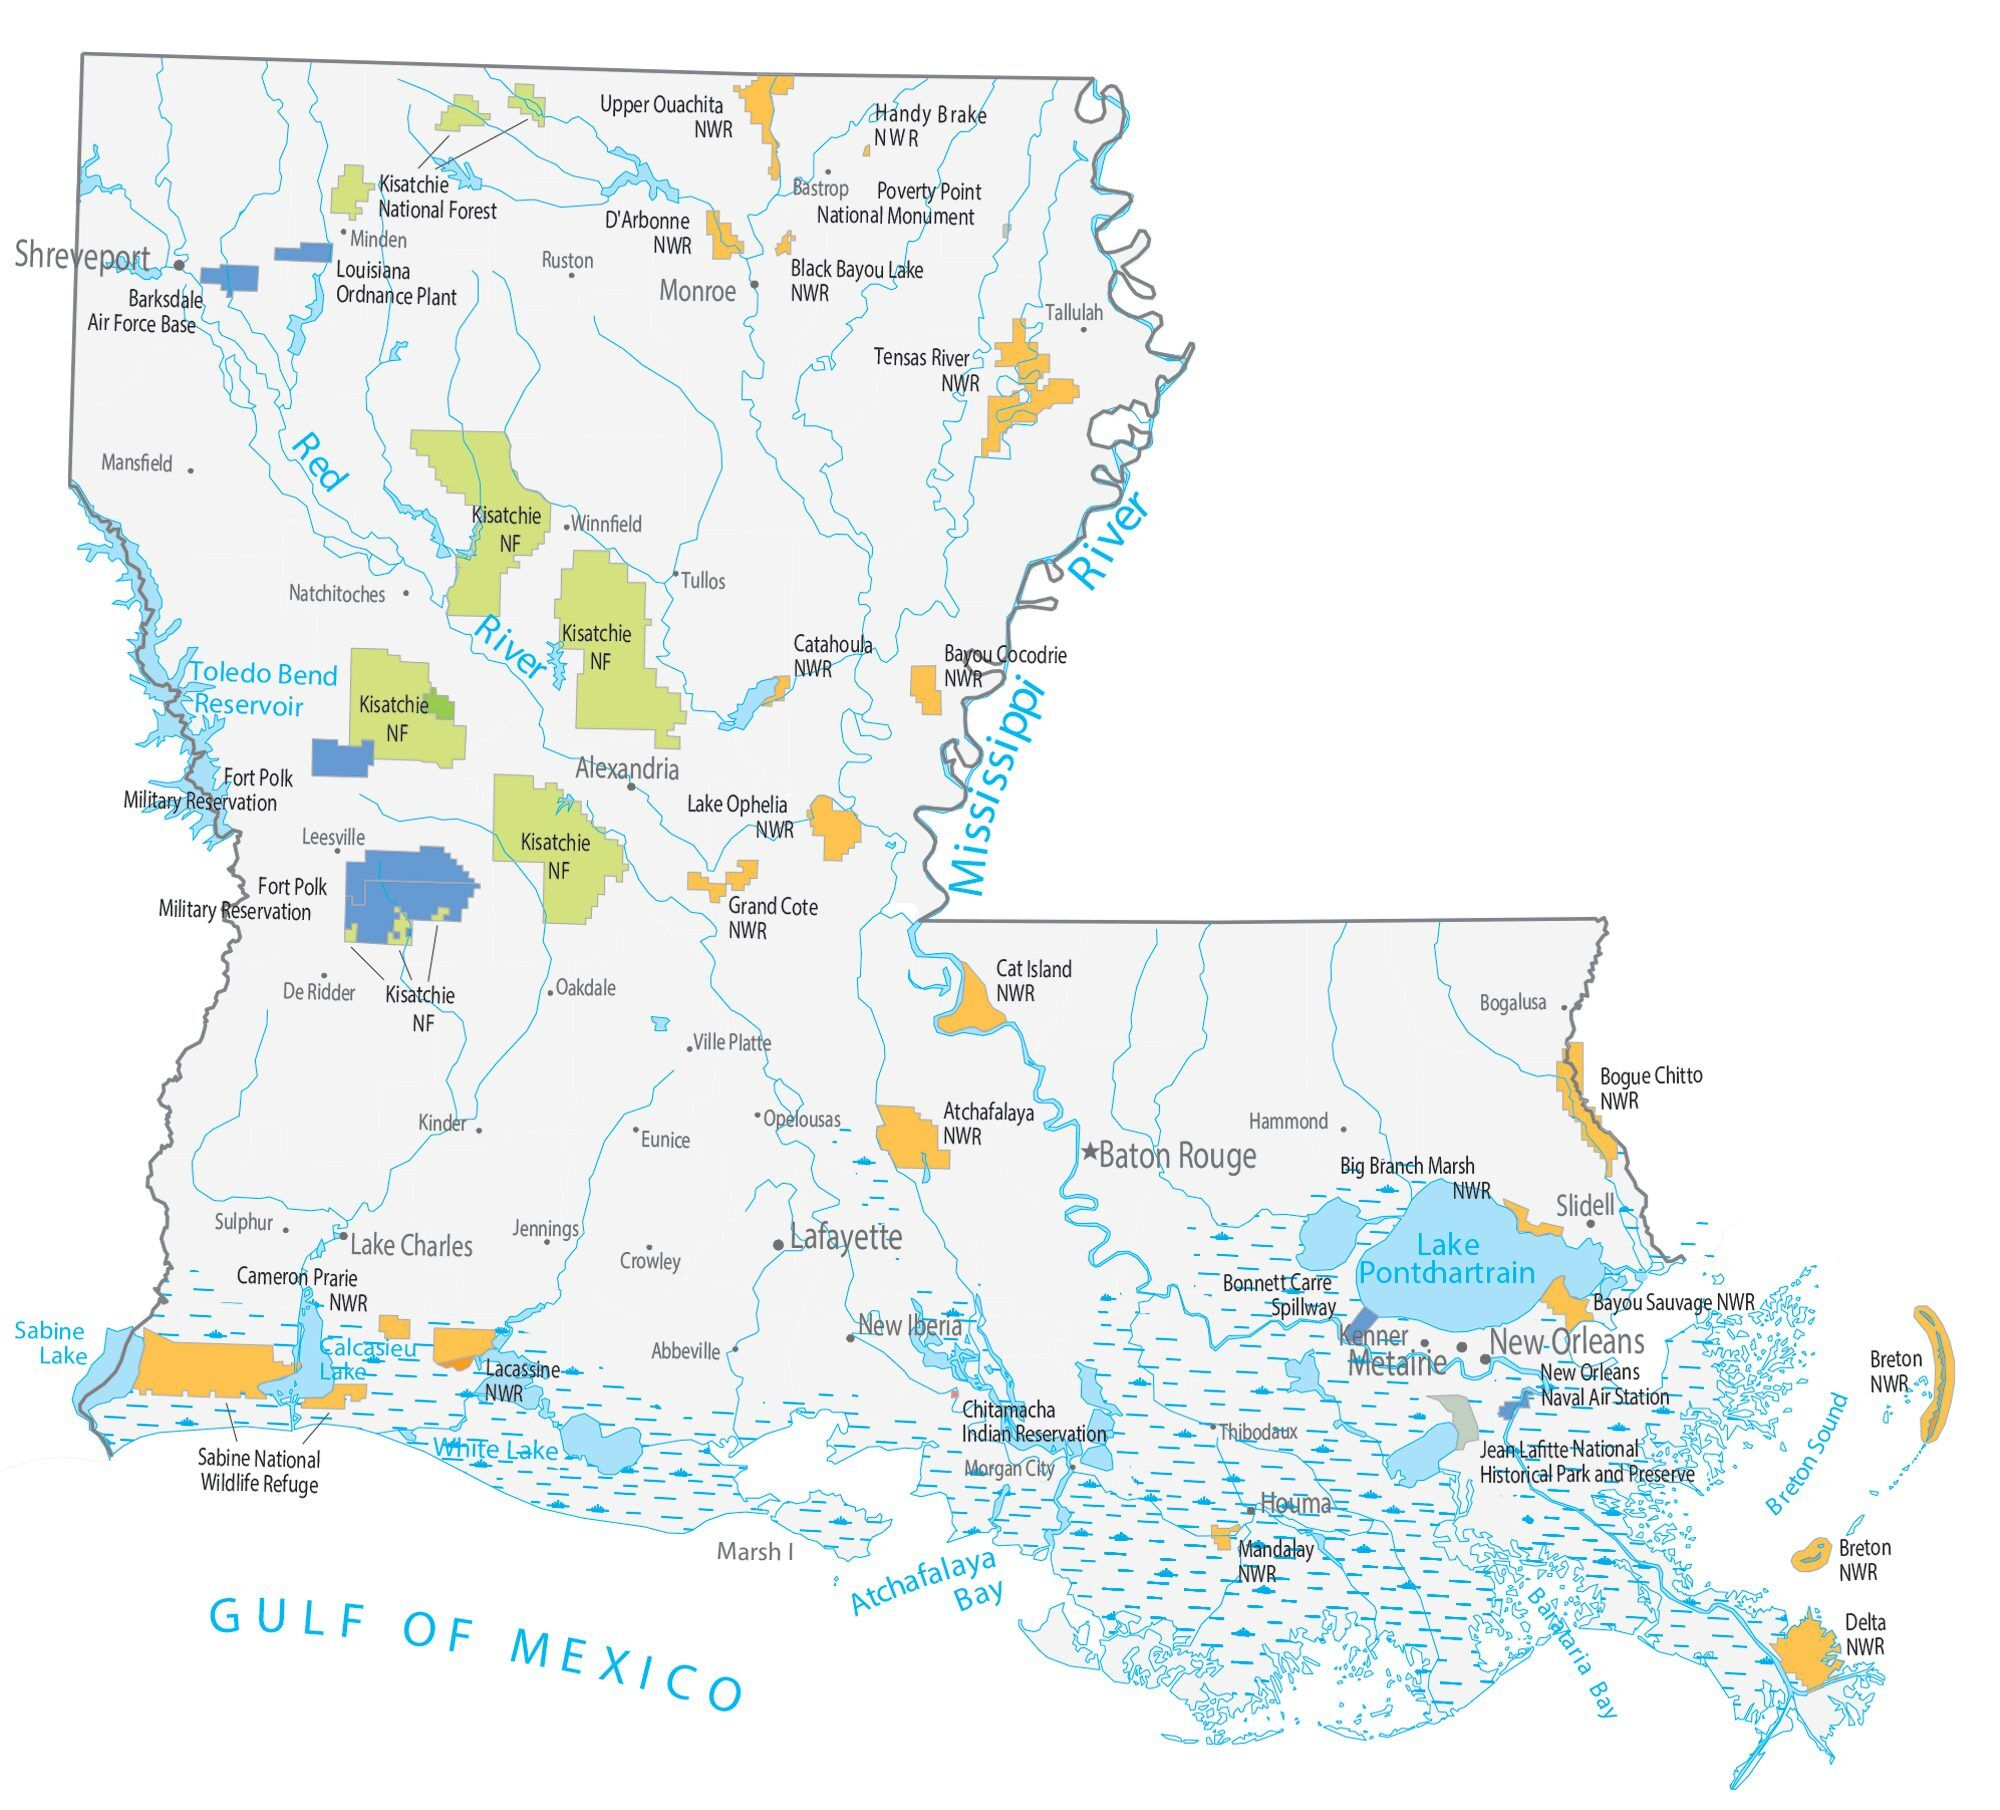 map of the state of louisiana Louisiana State Map Places And Landmarks Gis Geography map of the state of louisiana